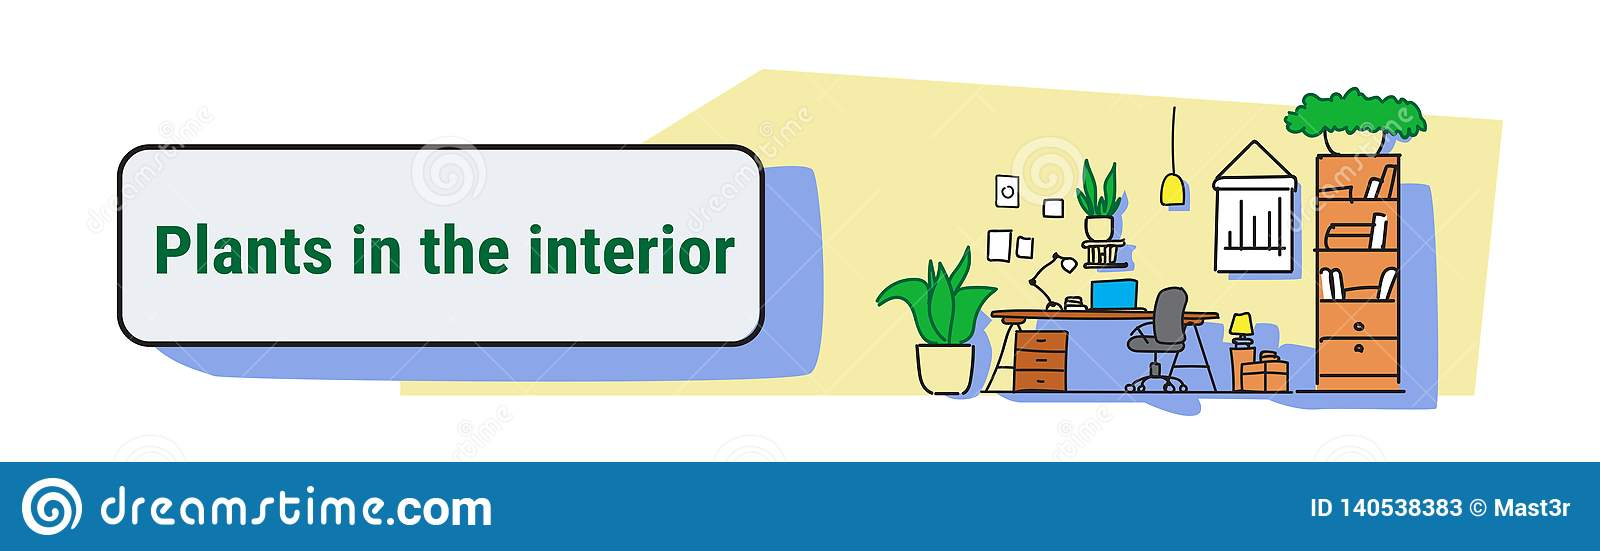 Modern workplace cabinet room office workspace interior design with plants on wall empty no people colorful sketch flow style horizontal banner vector